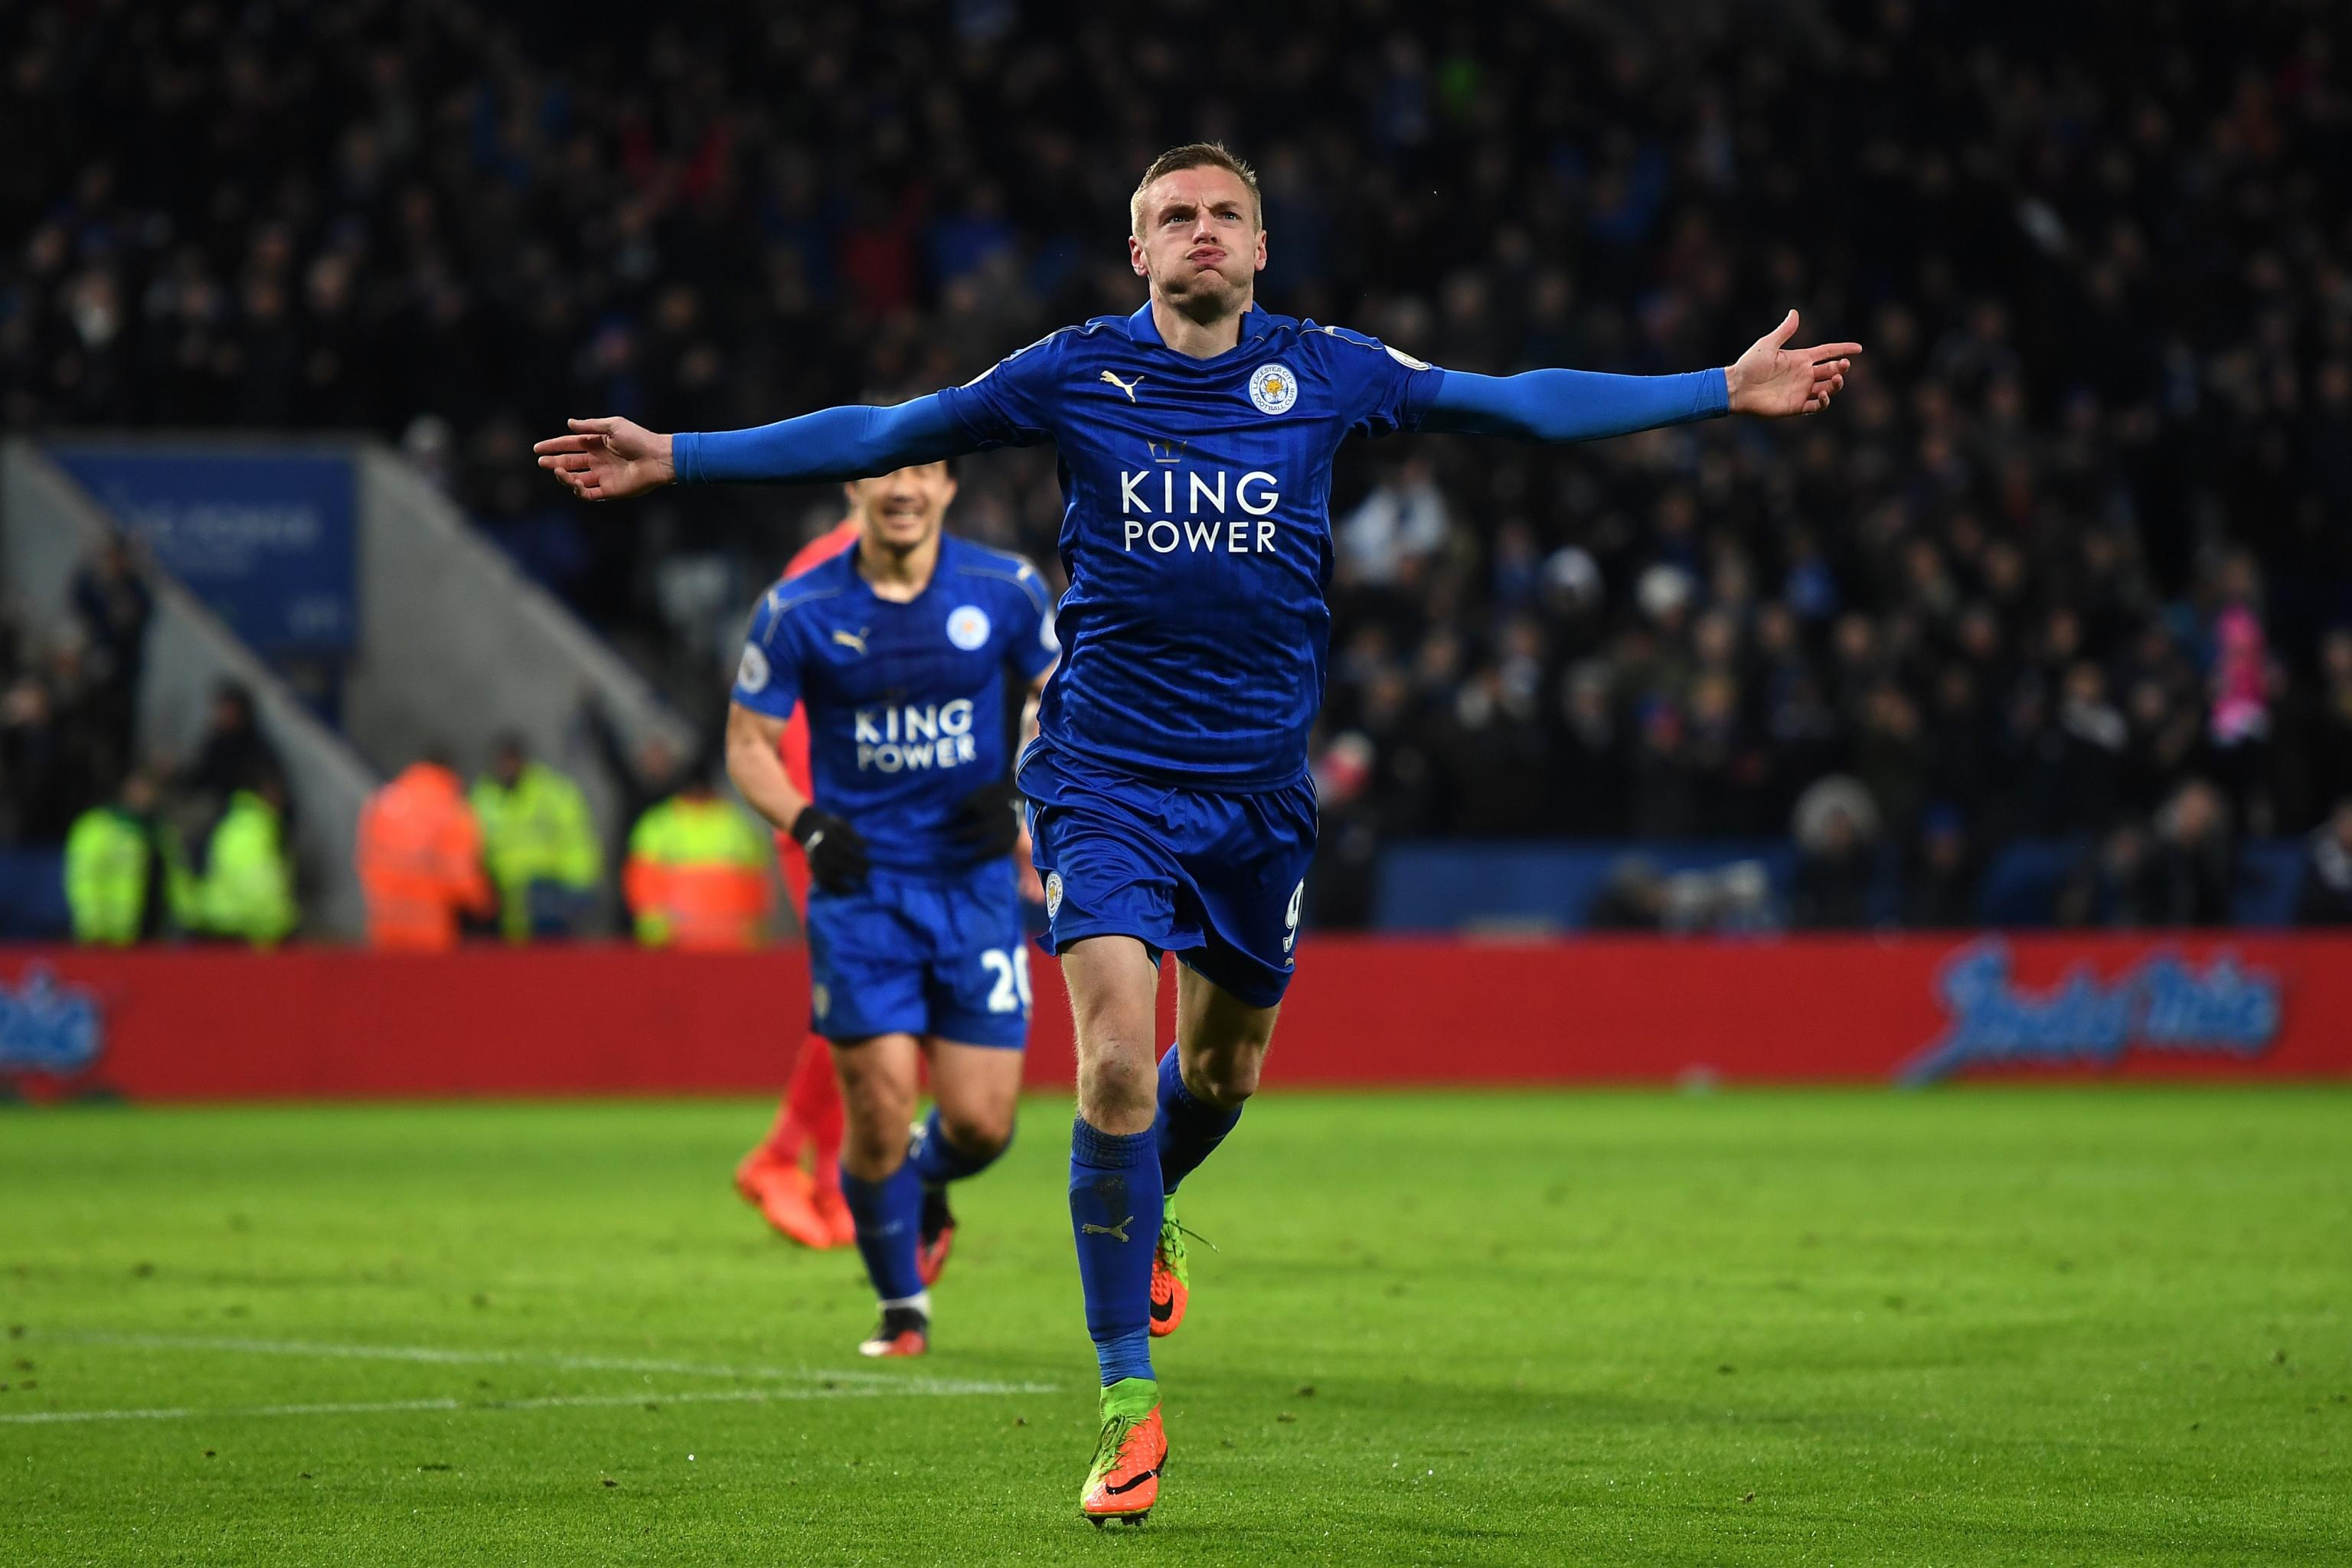 Leicester City Vs Liverpool Score And Reaction From 2017 Premier League Match Bleacher Report Latest News Videos And Highlights